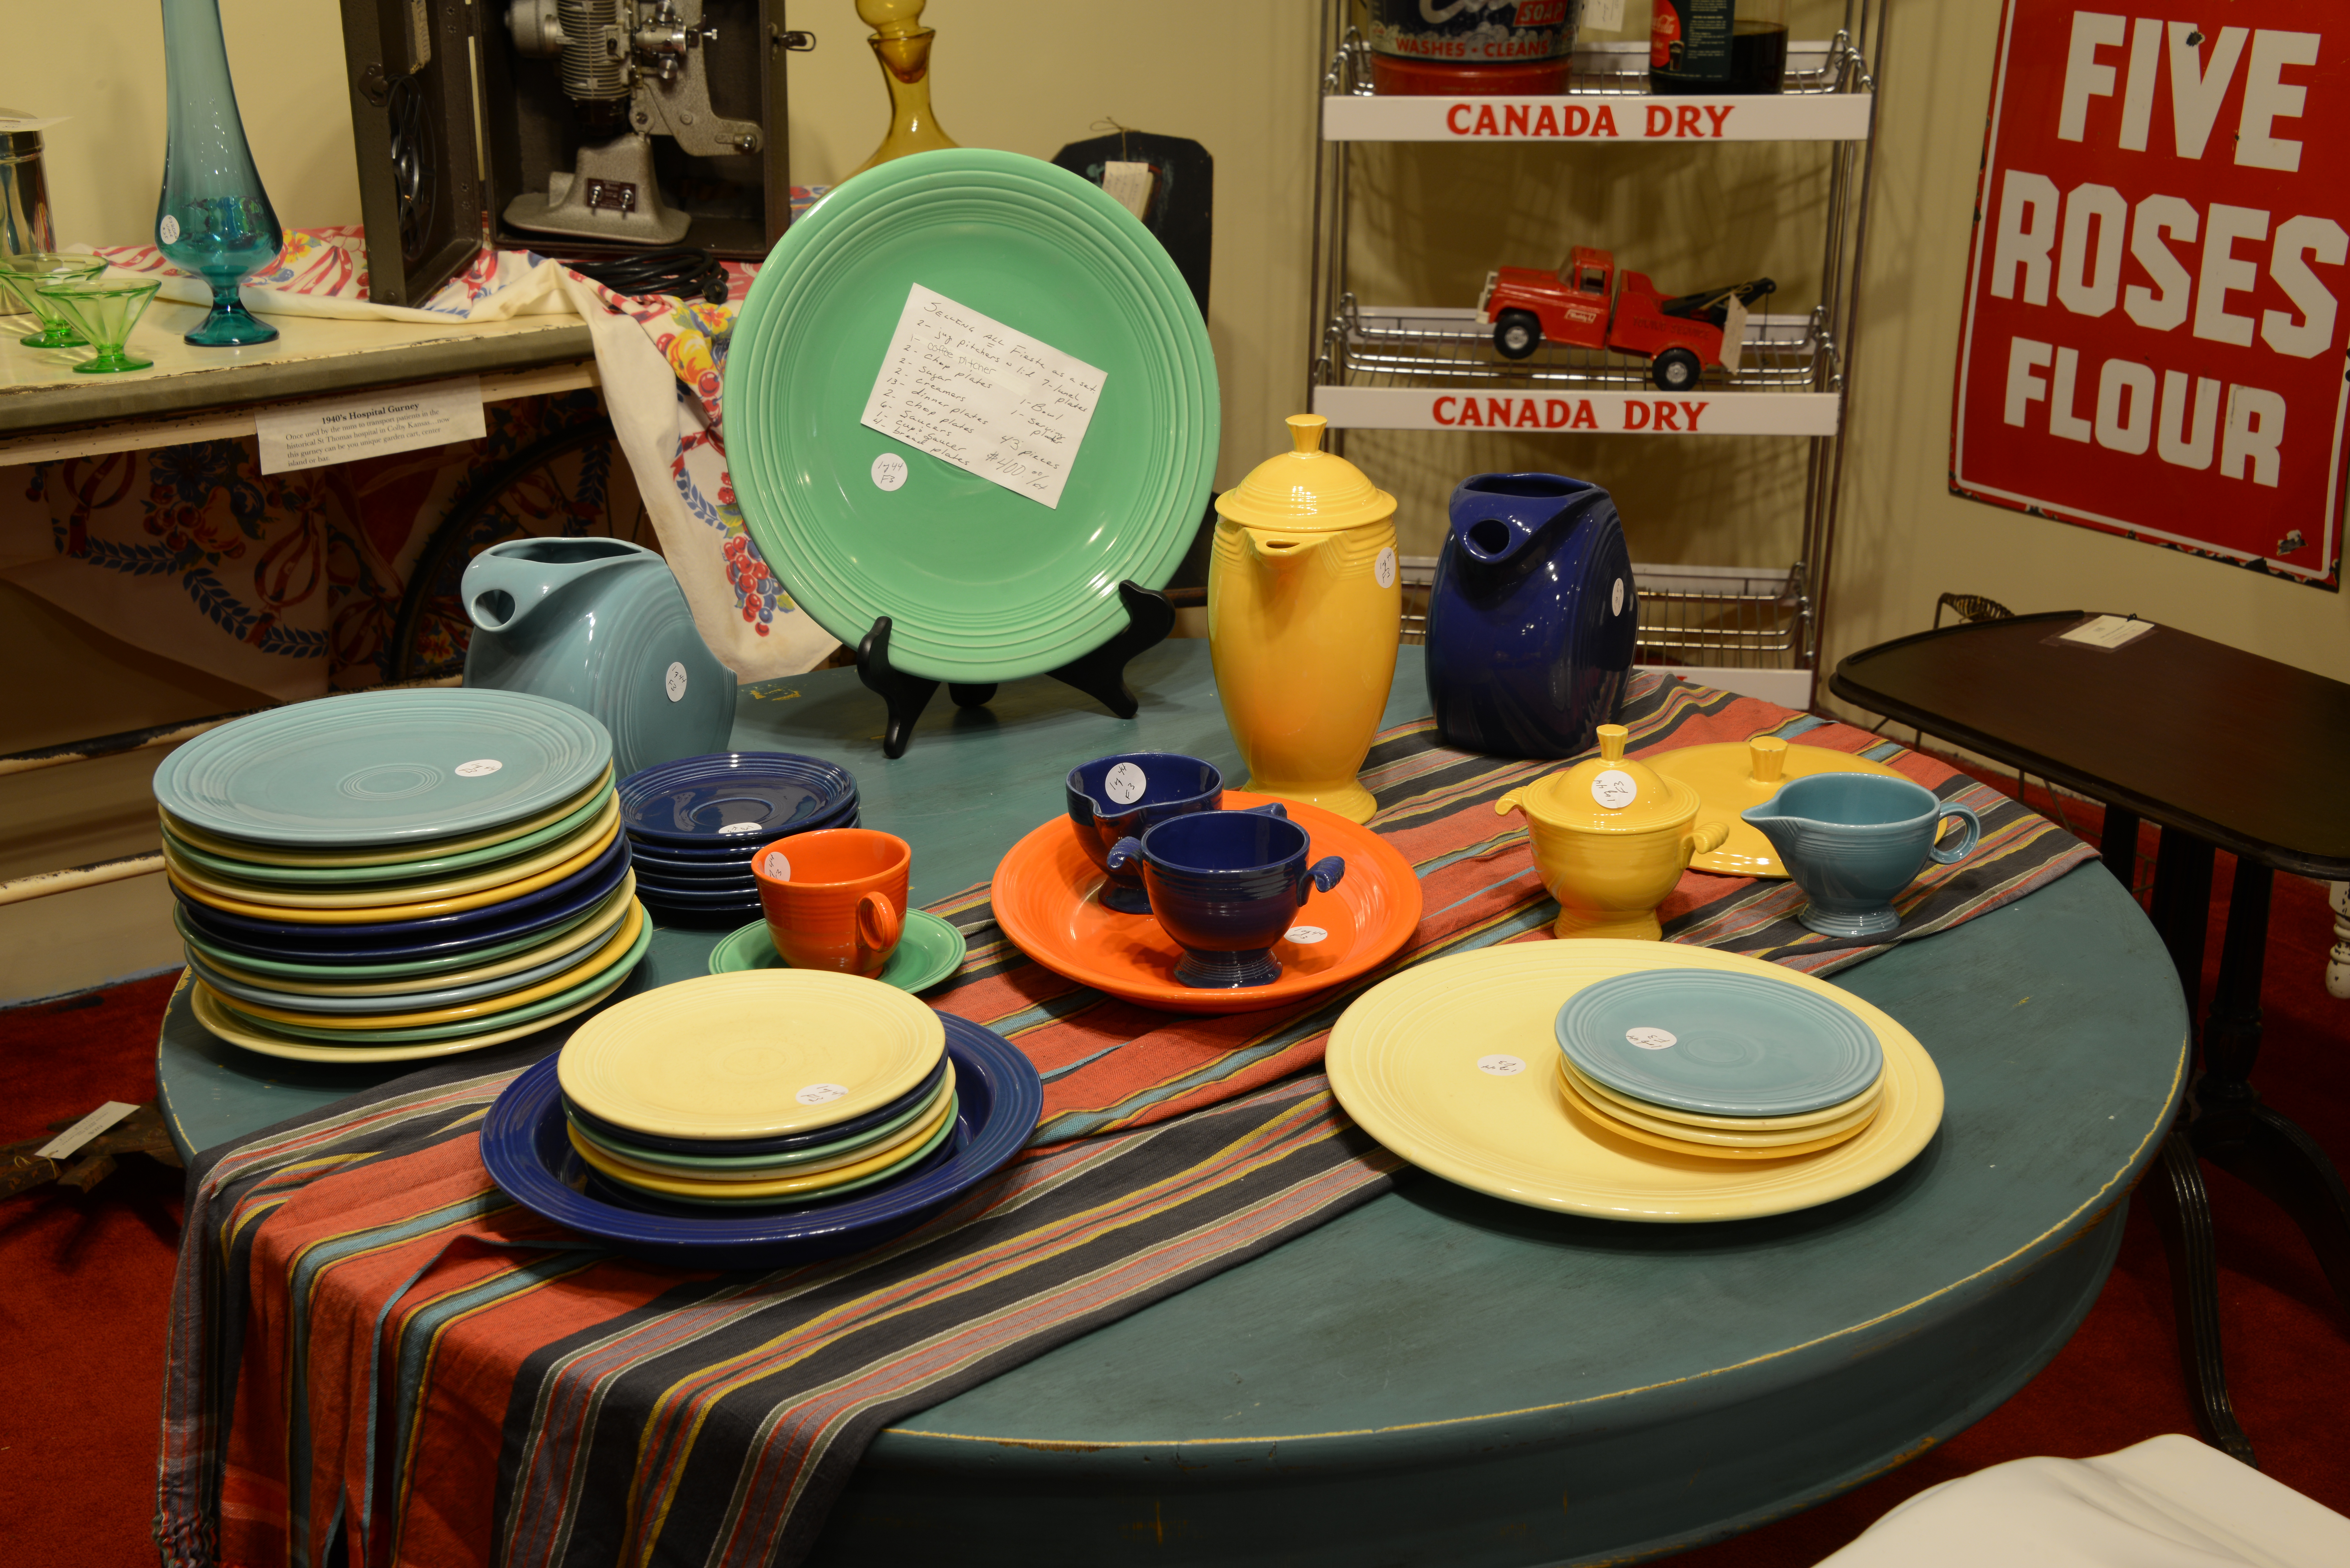 This Vintage Fiestaware 43 piece set includes everything shown. Just $400 for this entire collection of vintage color.